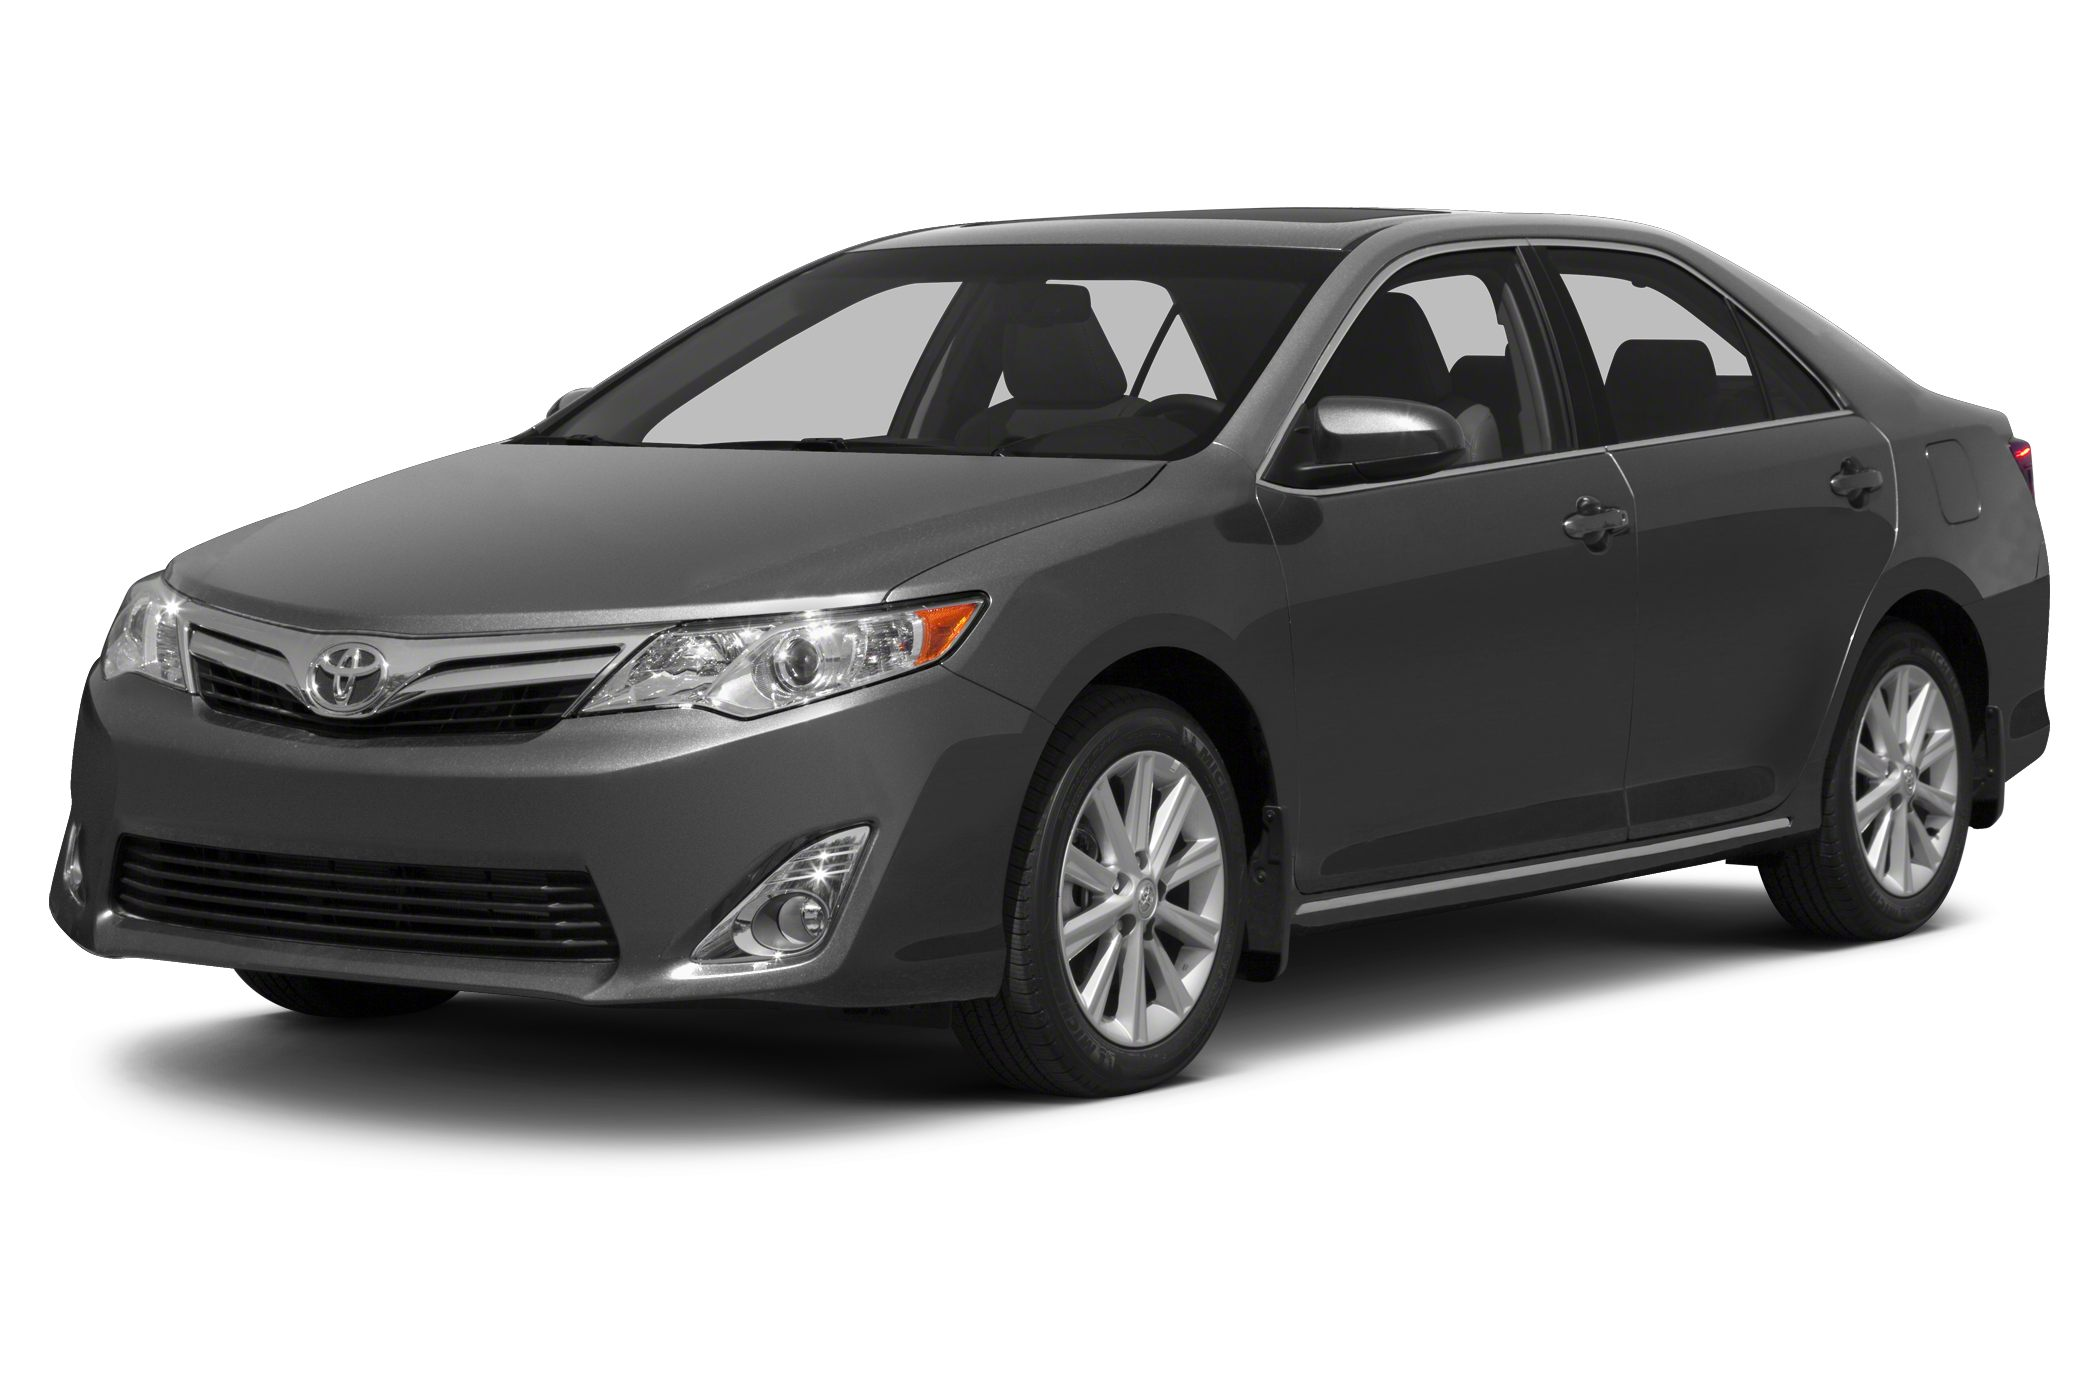 2013 Toyota Camry LE Sedan for sale in Lumberton for $19,988 with 34,684 miles